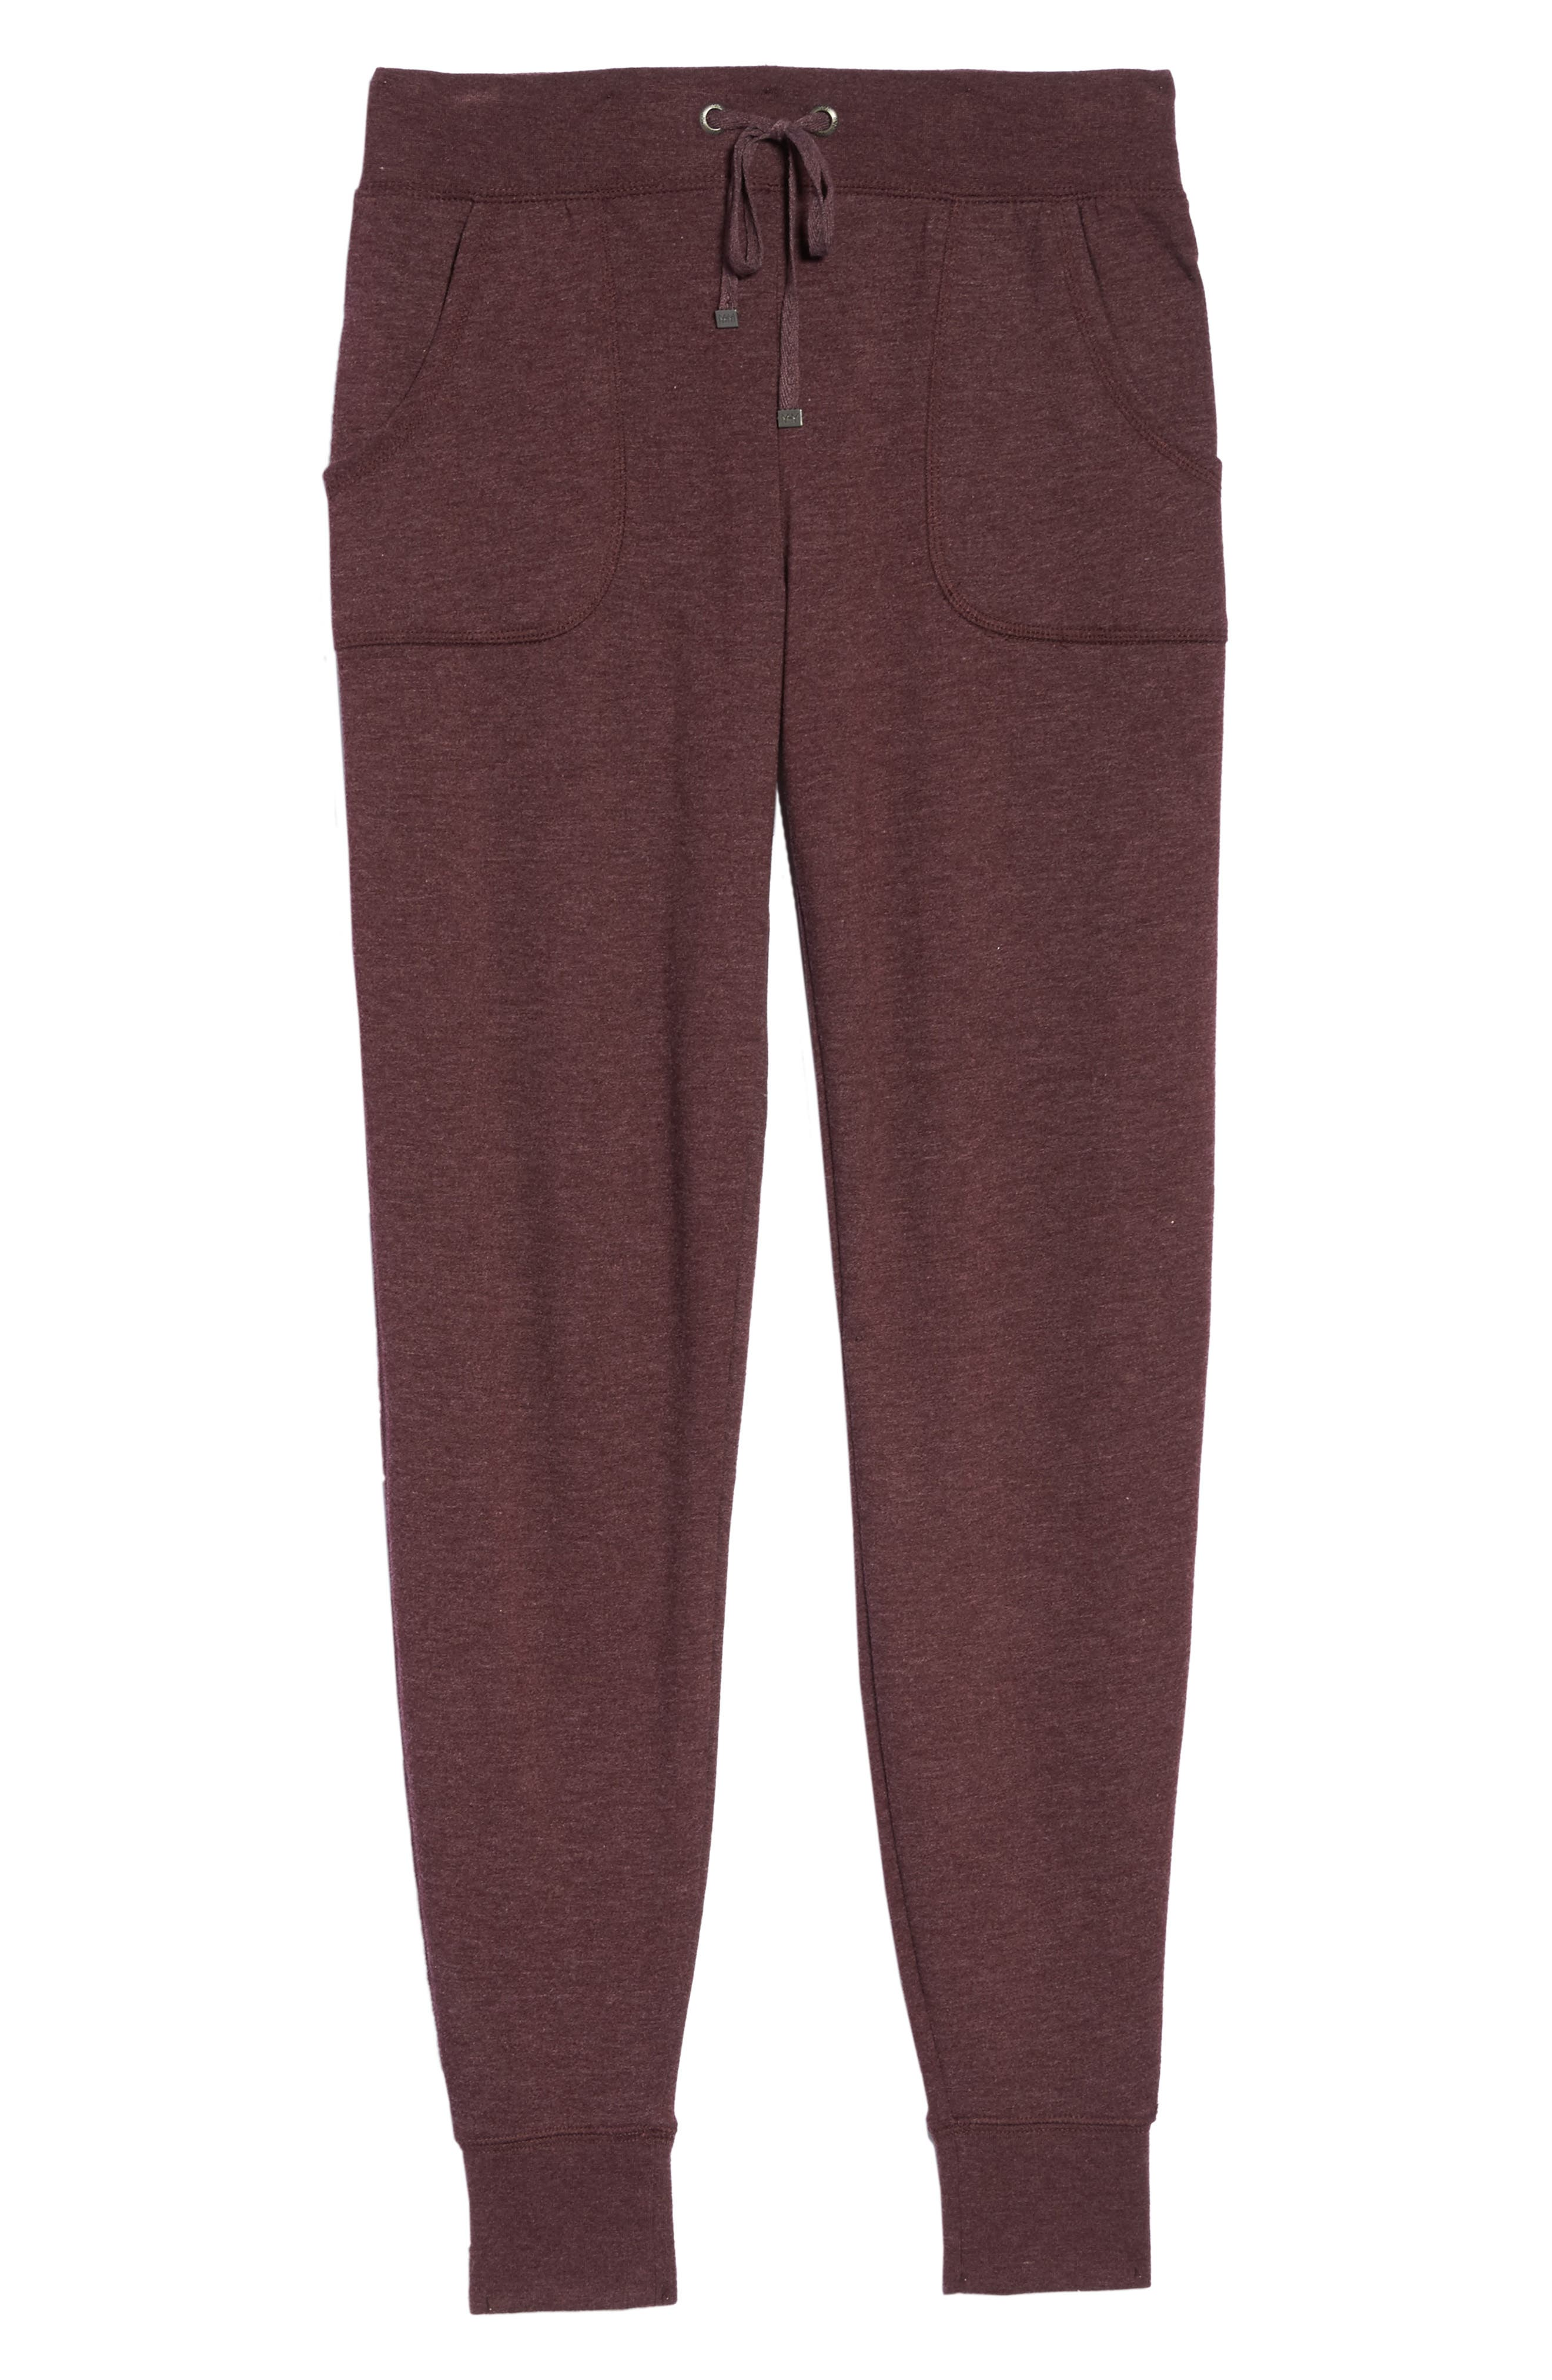 All About It Lounge Pants,                             Alternate thumbnail 38, color,